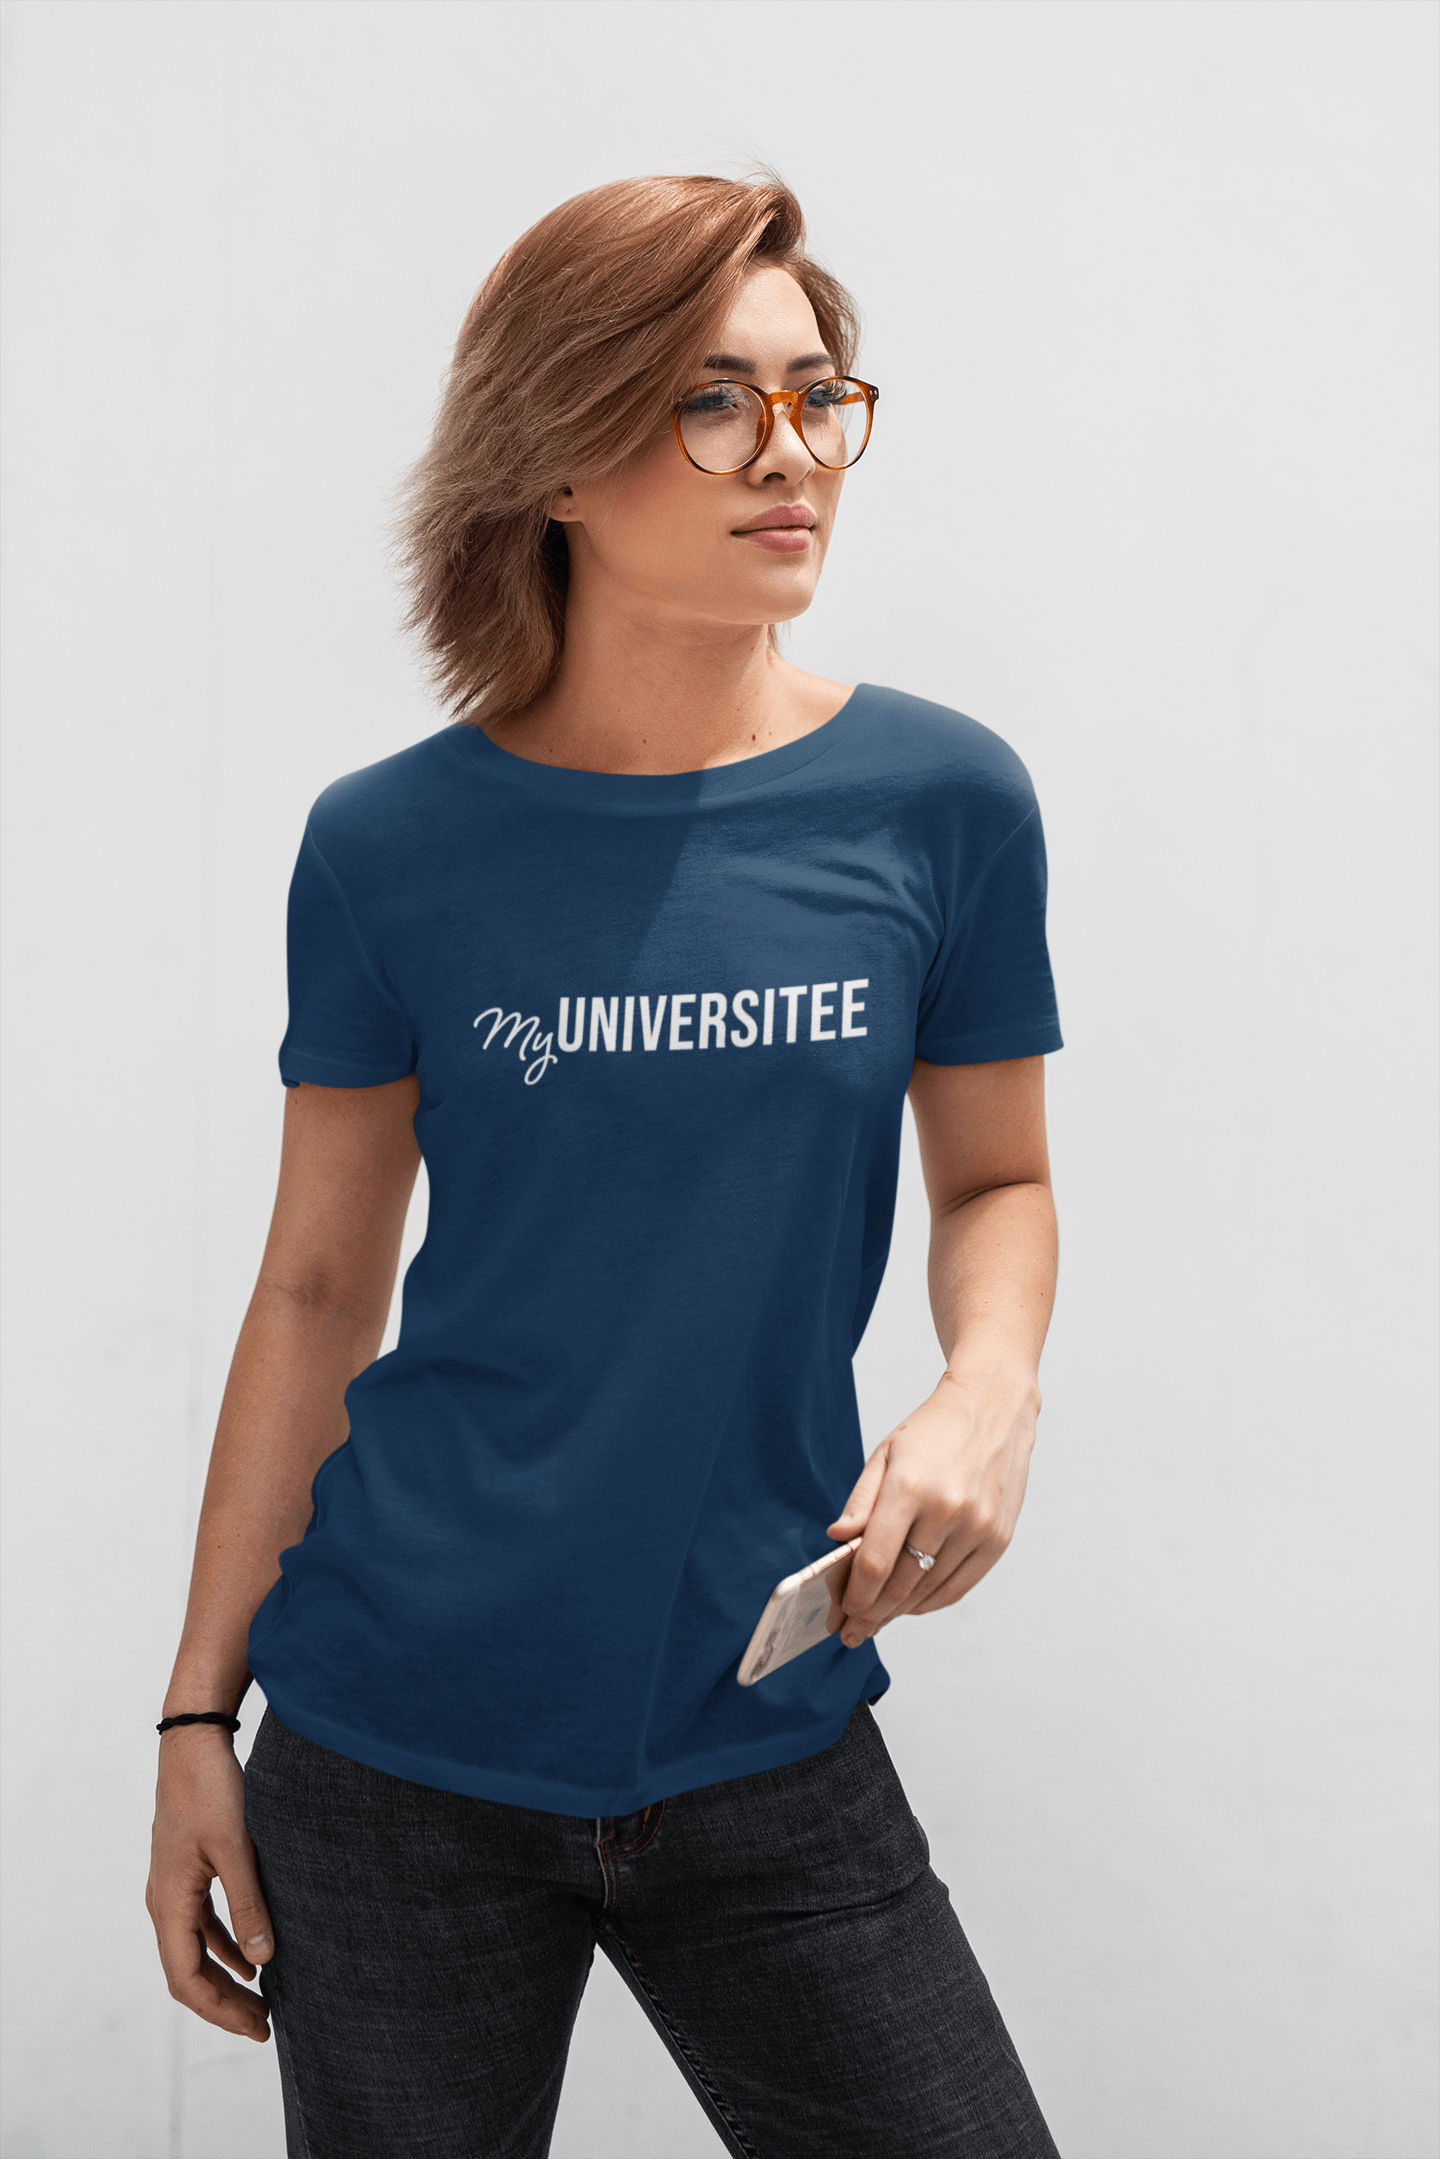 t-shirt-mockup-featuring-a-short-haired-woman-posing-in-front-of-a-white-wall-413-el-2